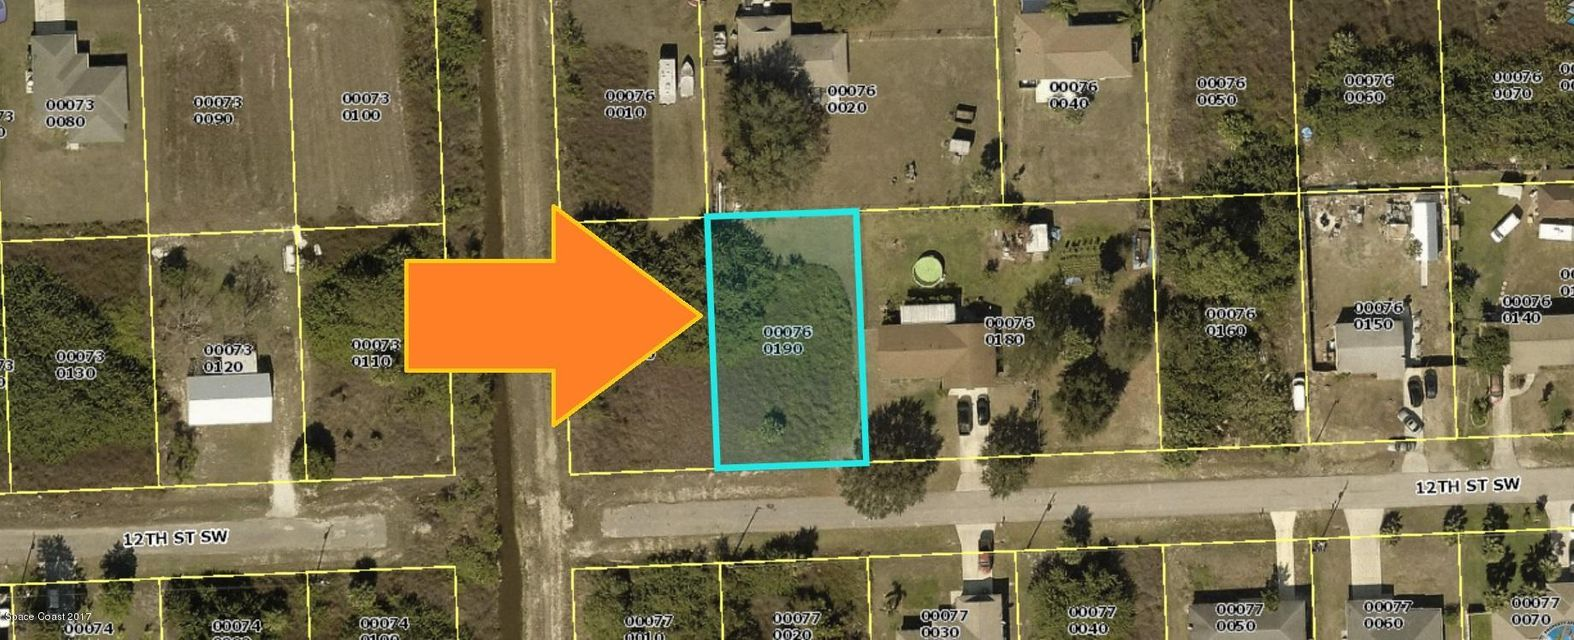 Terreno per Vendita alle ore 3916 12th 3916 12th Lehigh Acres, Florida 33974 Stati Uniti